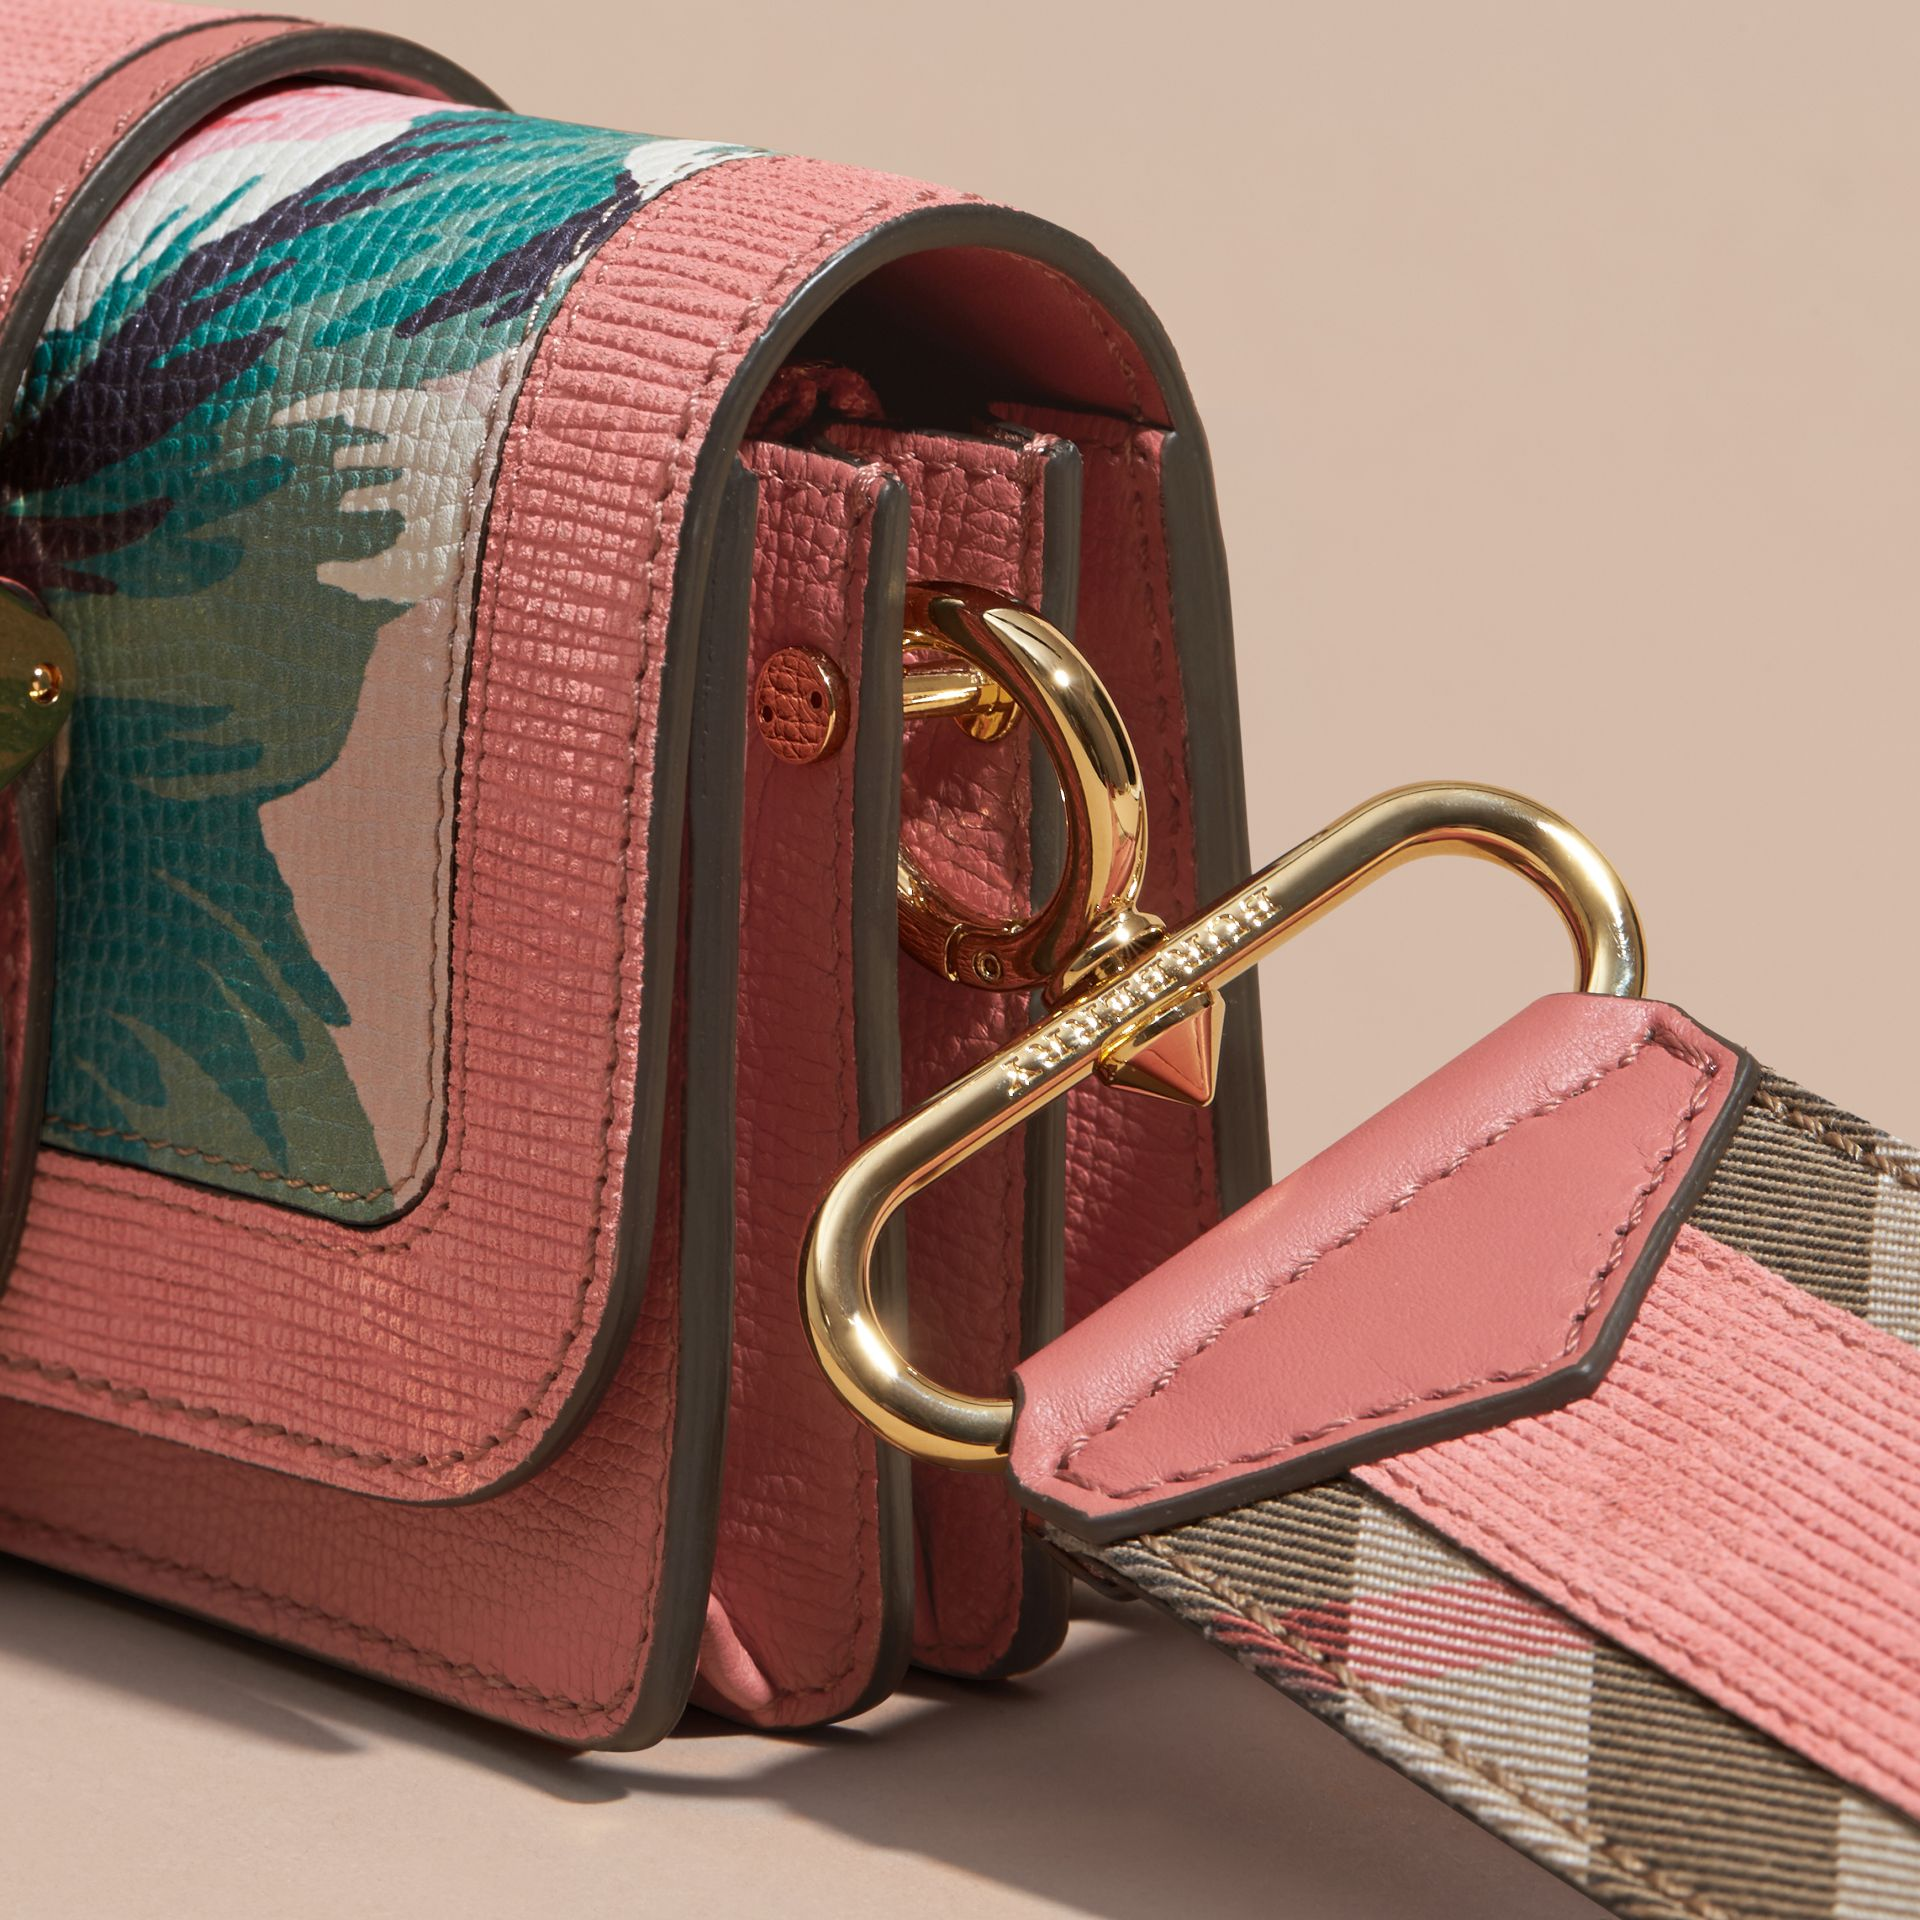 Copper pink /emerald The Small Buckle Bag in Peony Rose Print Leather Copper Pink /emerald - gallery image 2